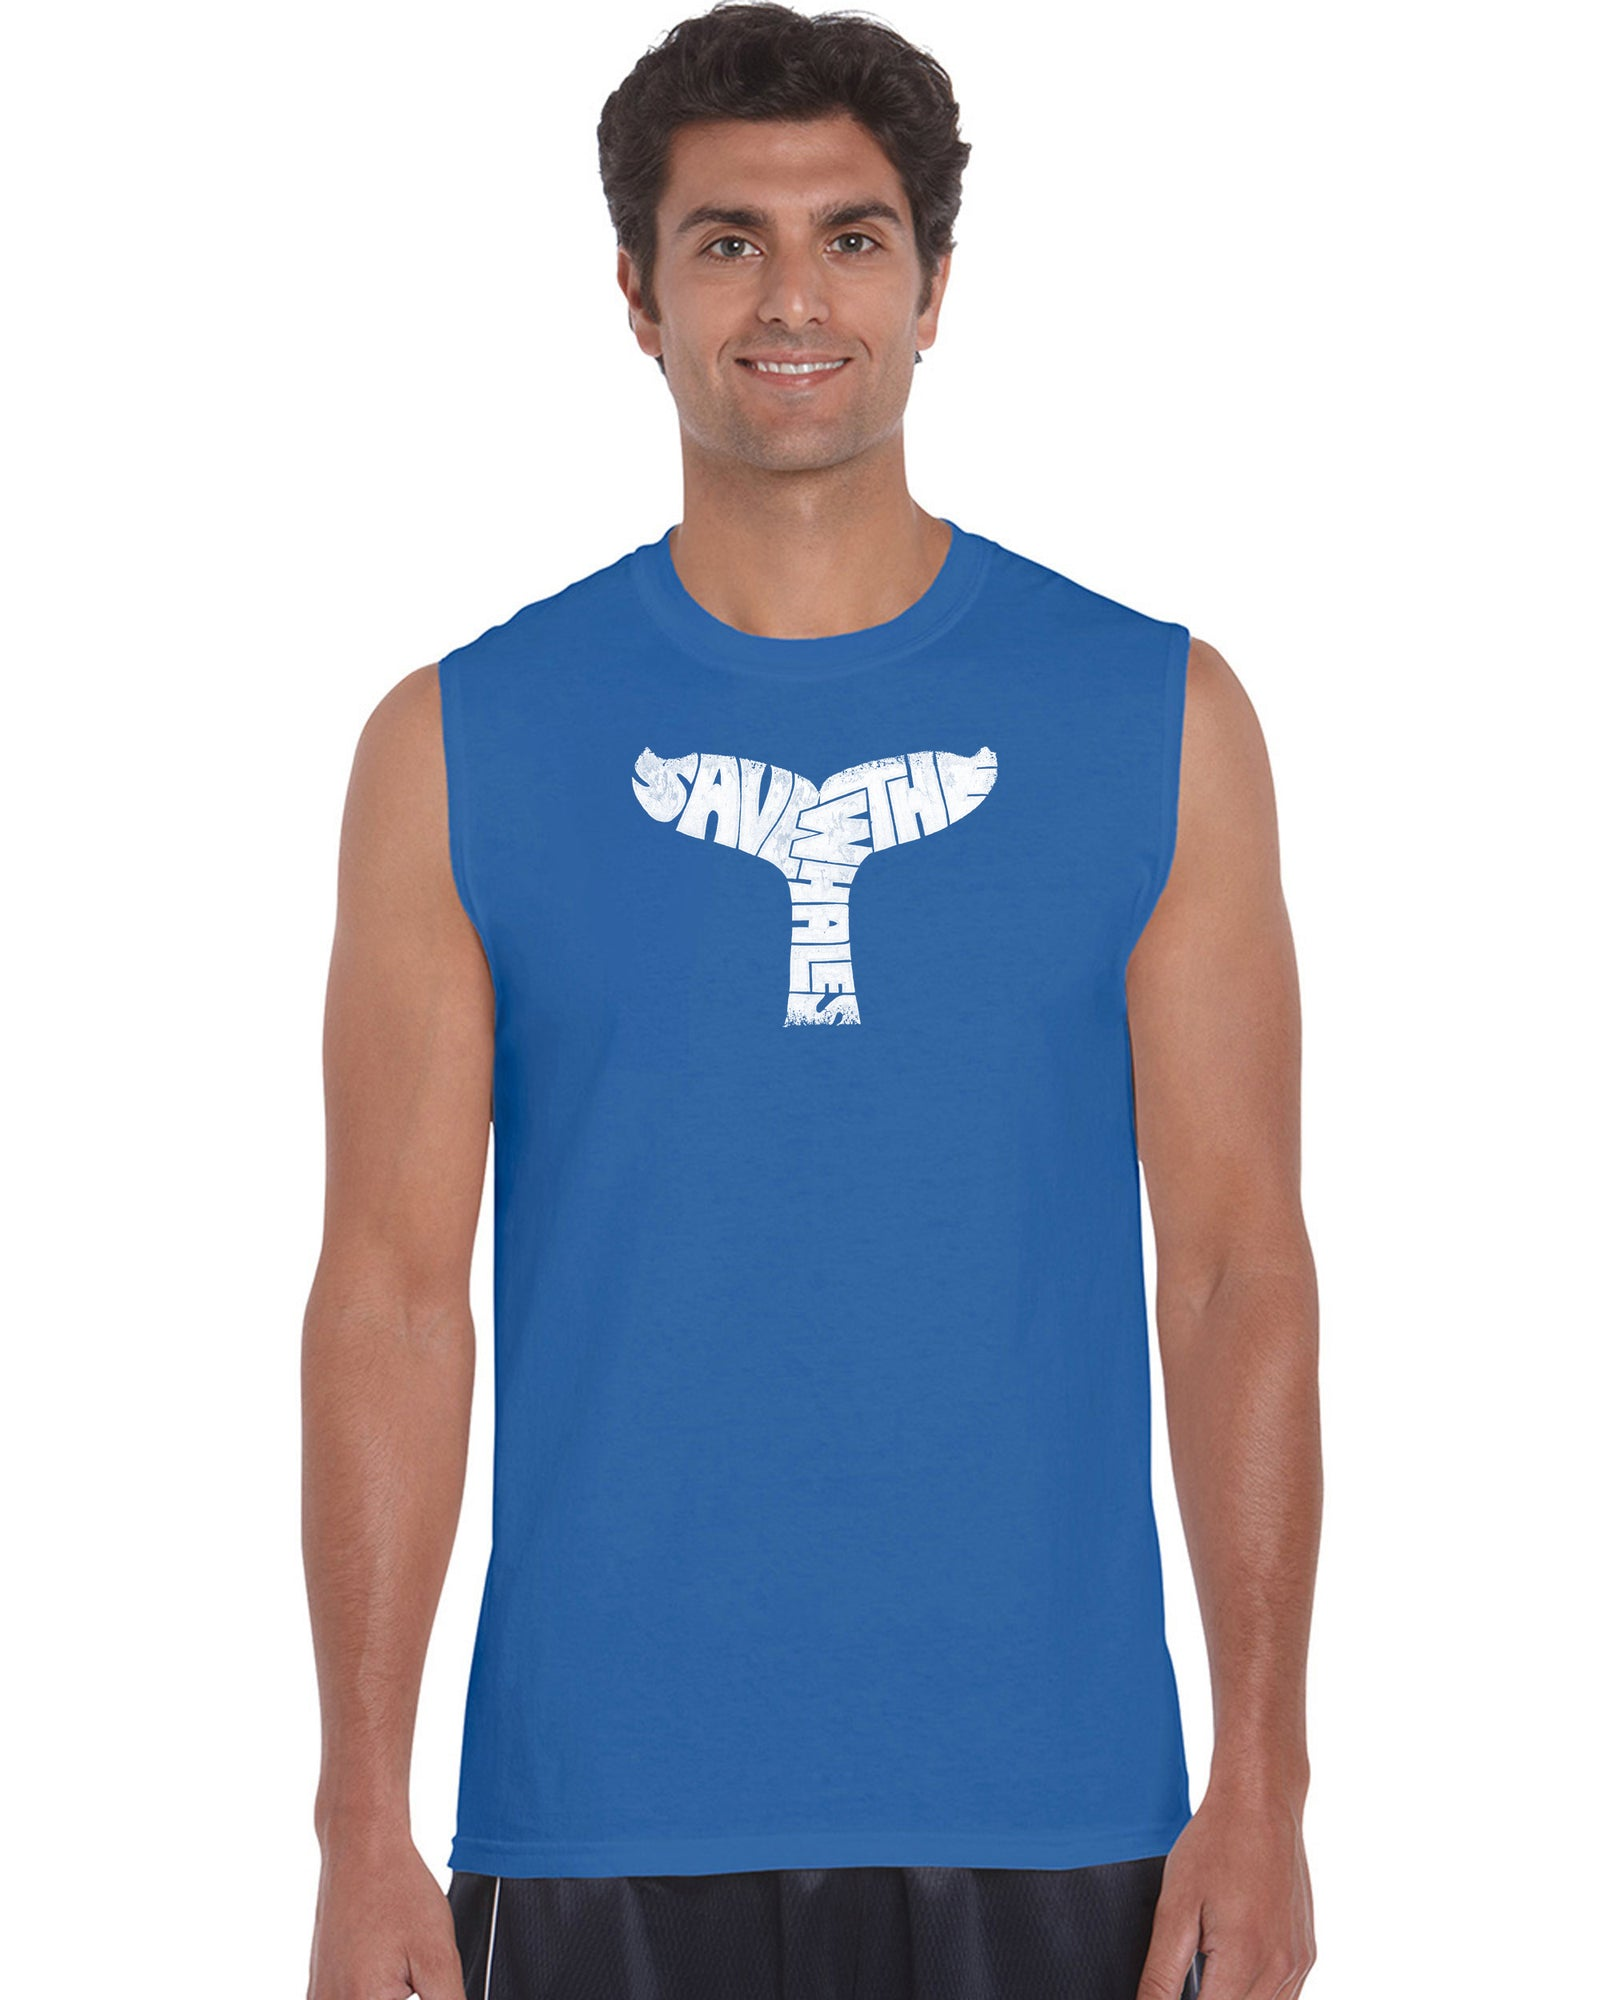 Men's Sleeveless T-shirt - SAVE THE WHALES